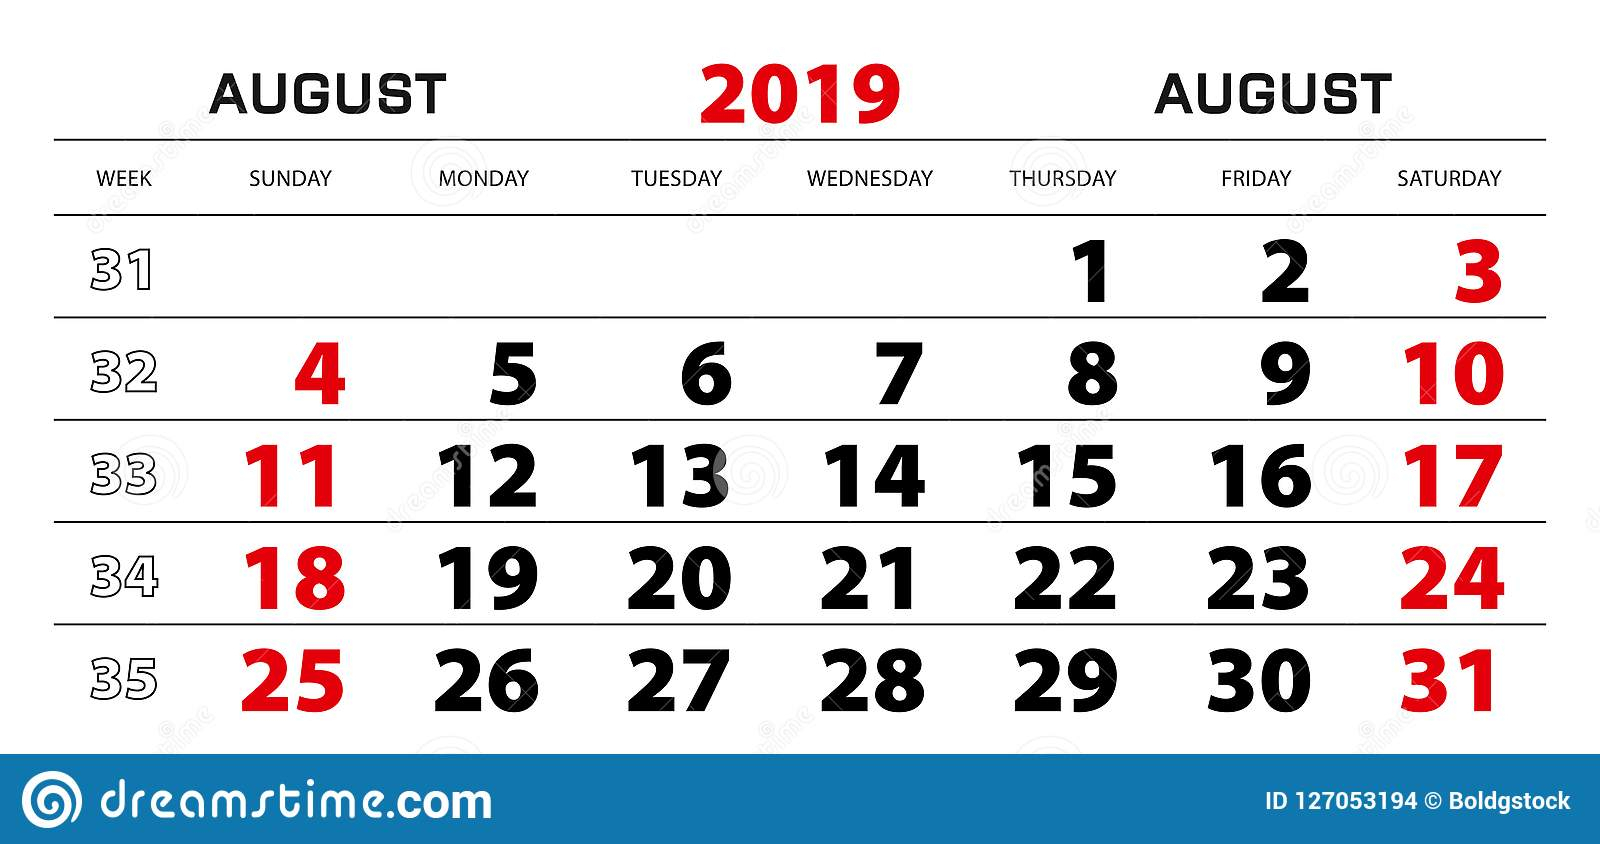 Wall Calendar 2019 For August, Week Start From Sunday. Stock